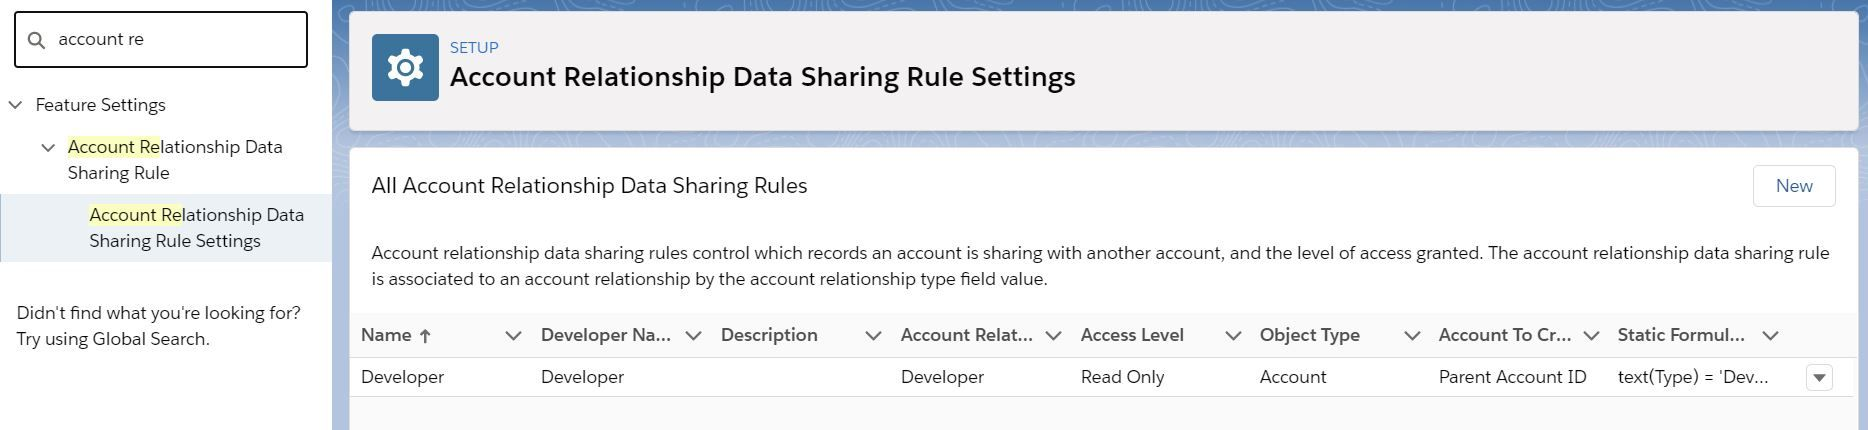 account-relationship-data-sharing-rule-settings